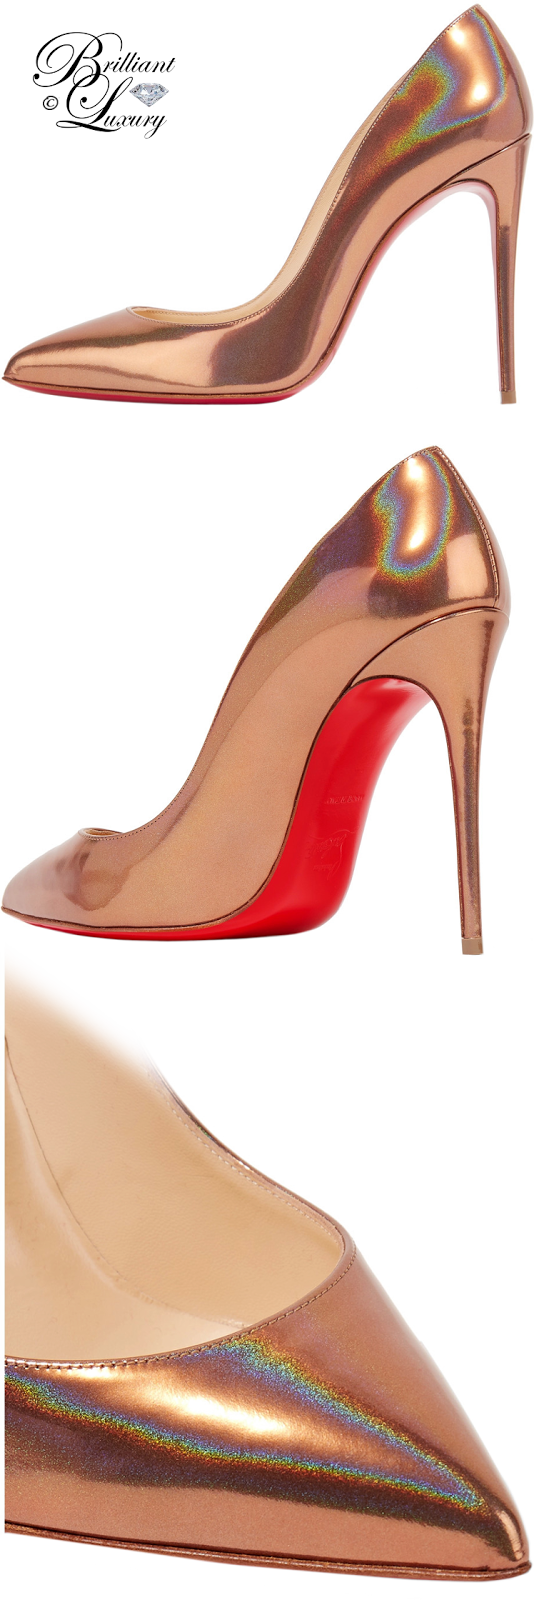 Brilliant Luxury ♦ Christian Louboutin Pigalle Follies Metallic Pumps